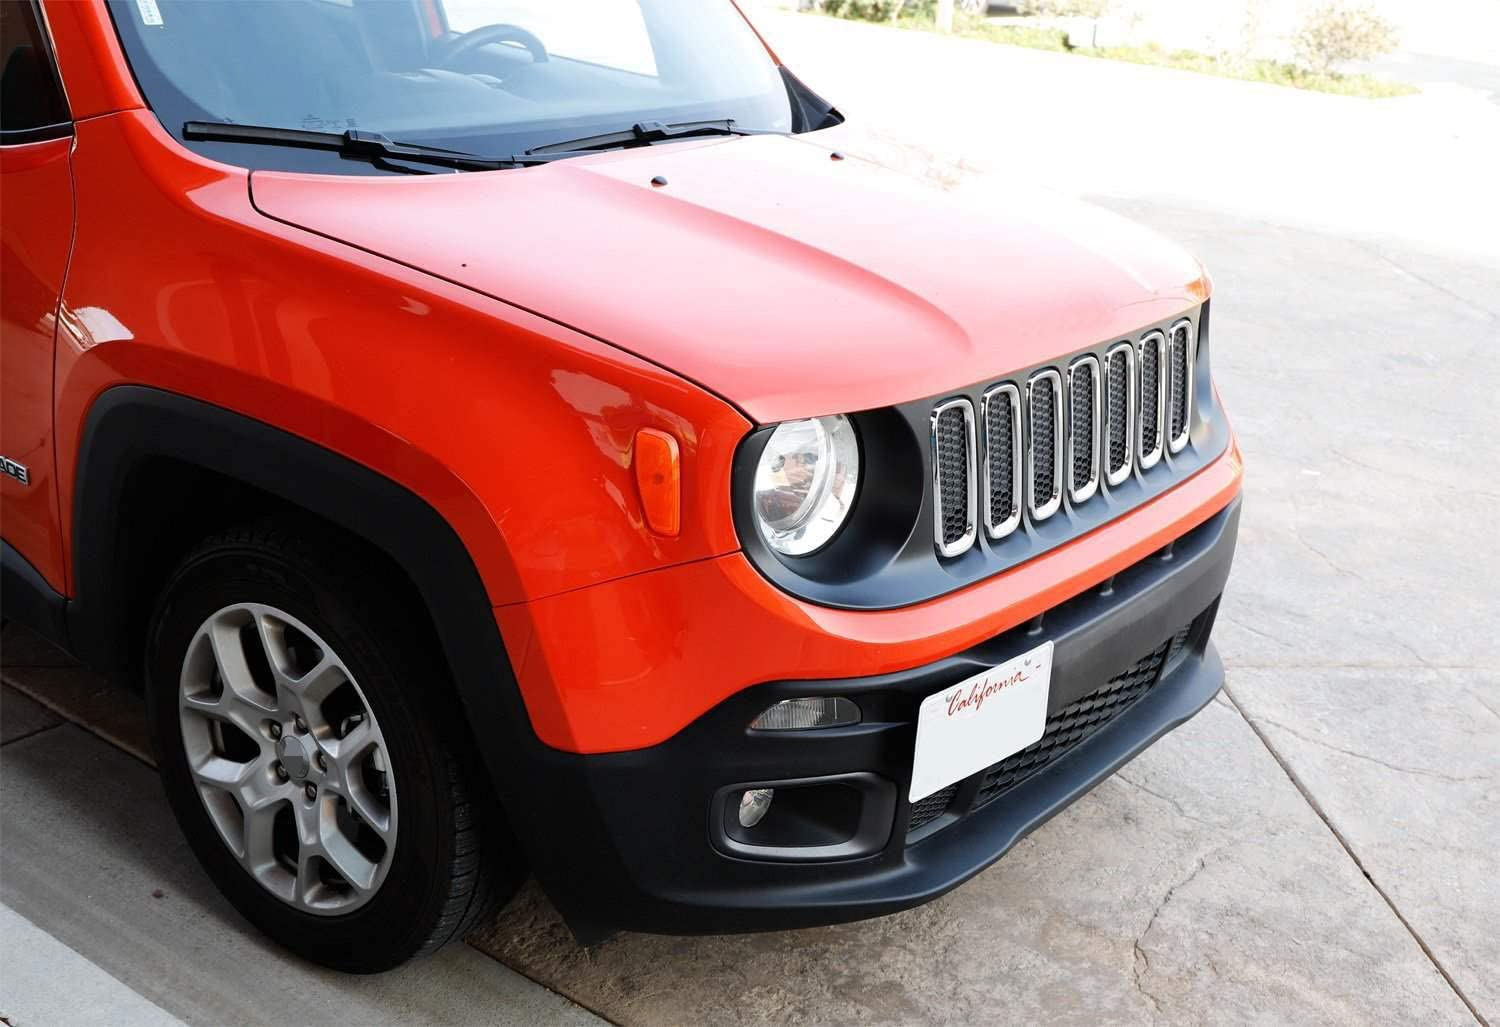 iJDMTOY No Drill Front Bumper Tow Hook License Plate Mounting Bracket Adapter Kit For 2015-up Jeep Renegade Latitude Sport Limited Except Trailhawk